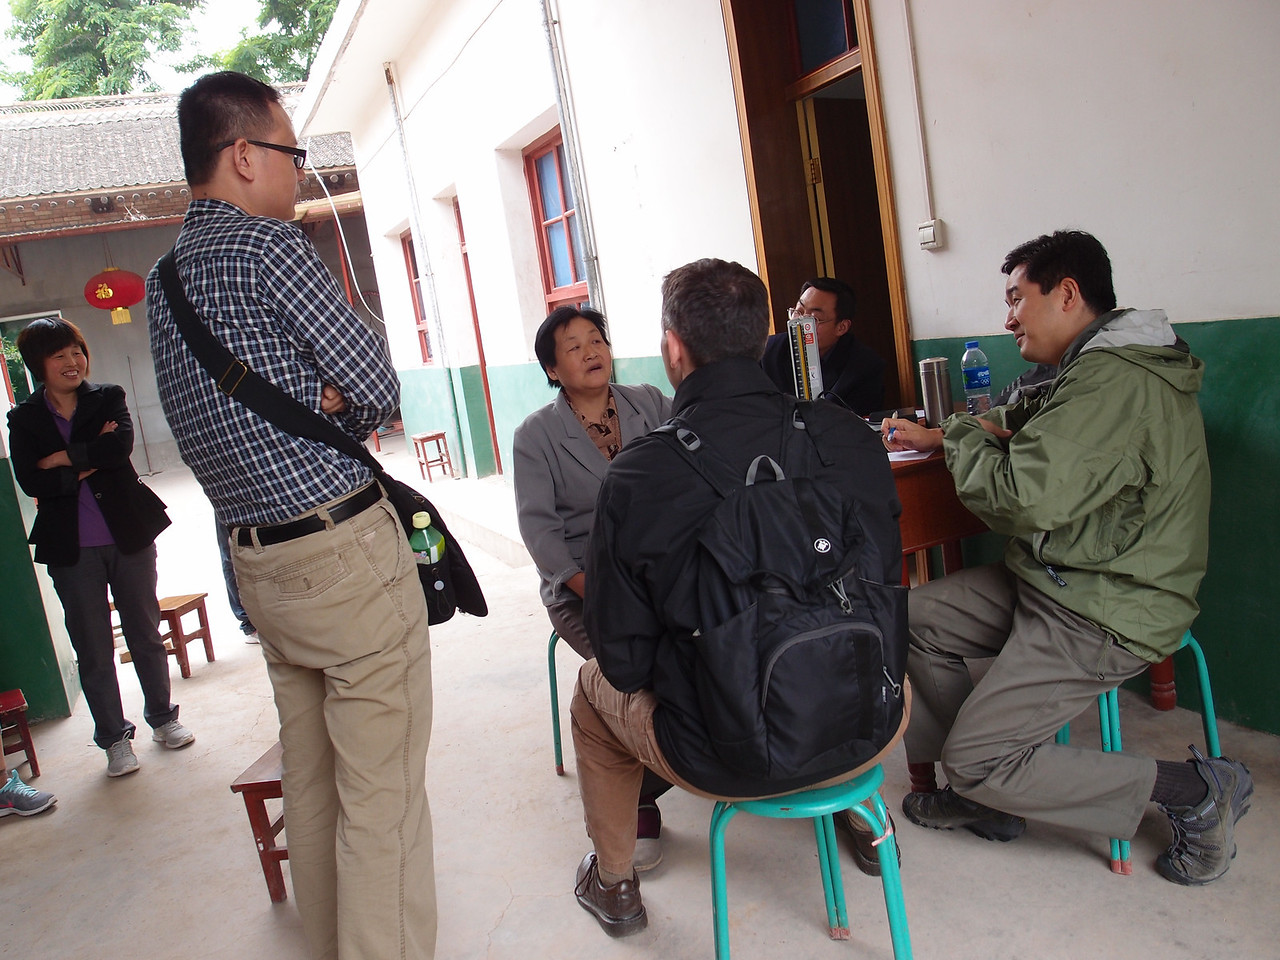 20120524_1257_0533 Fuping